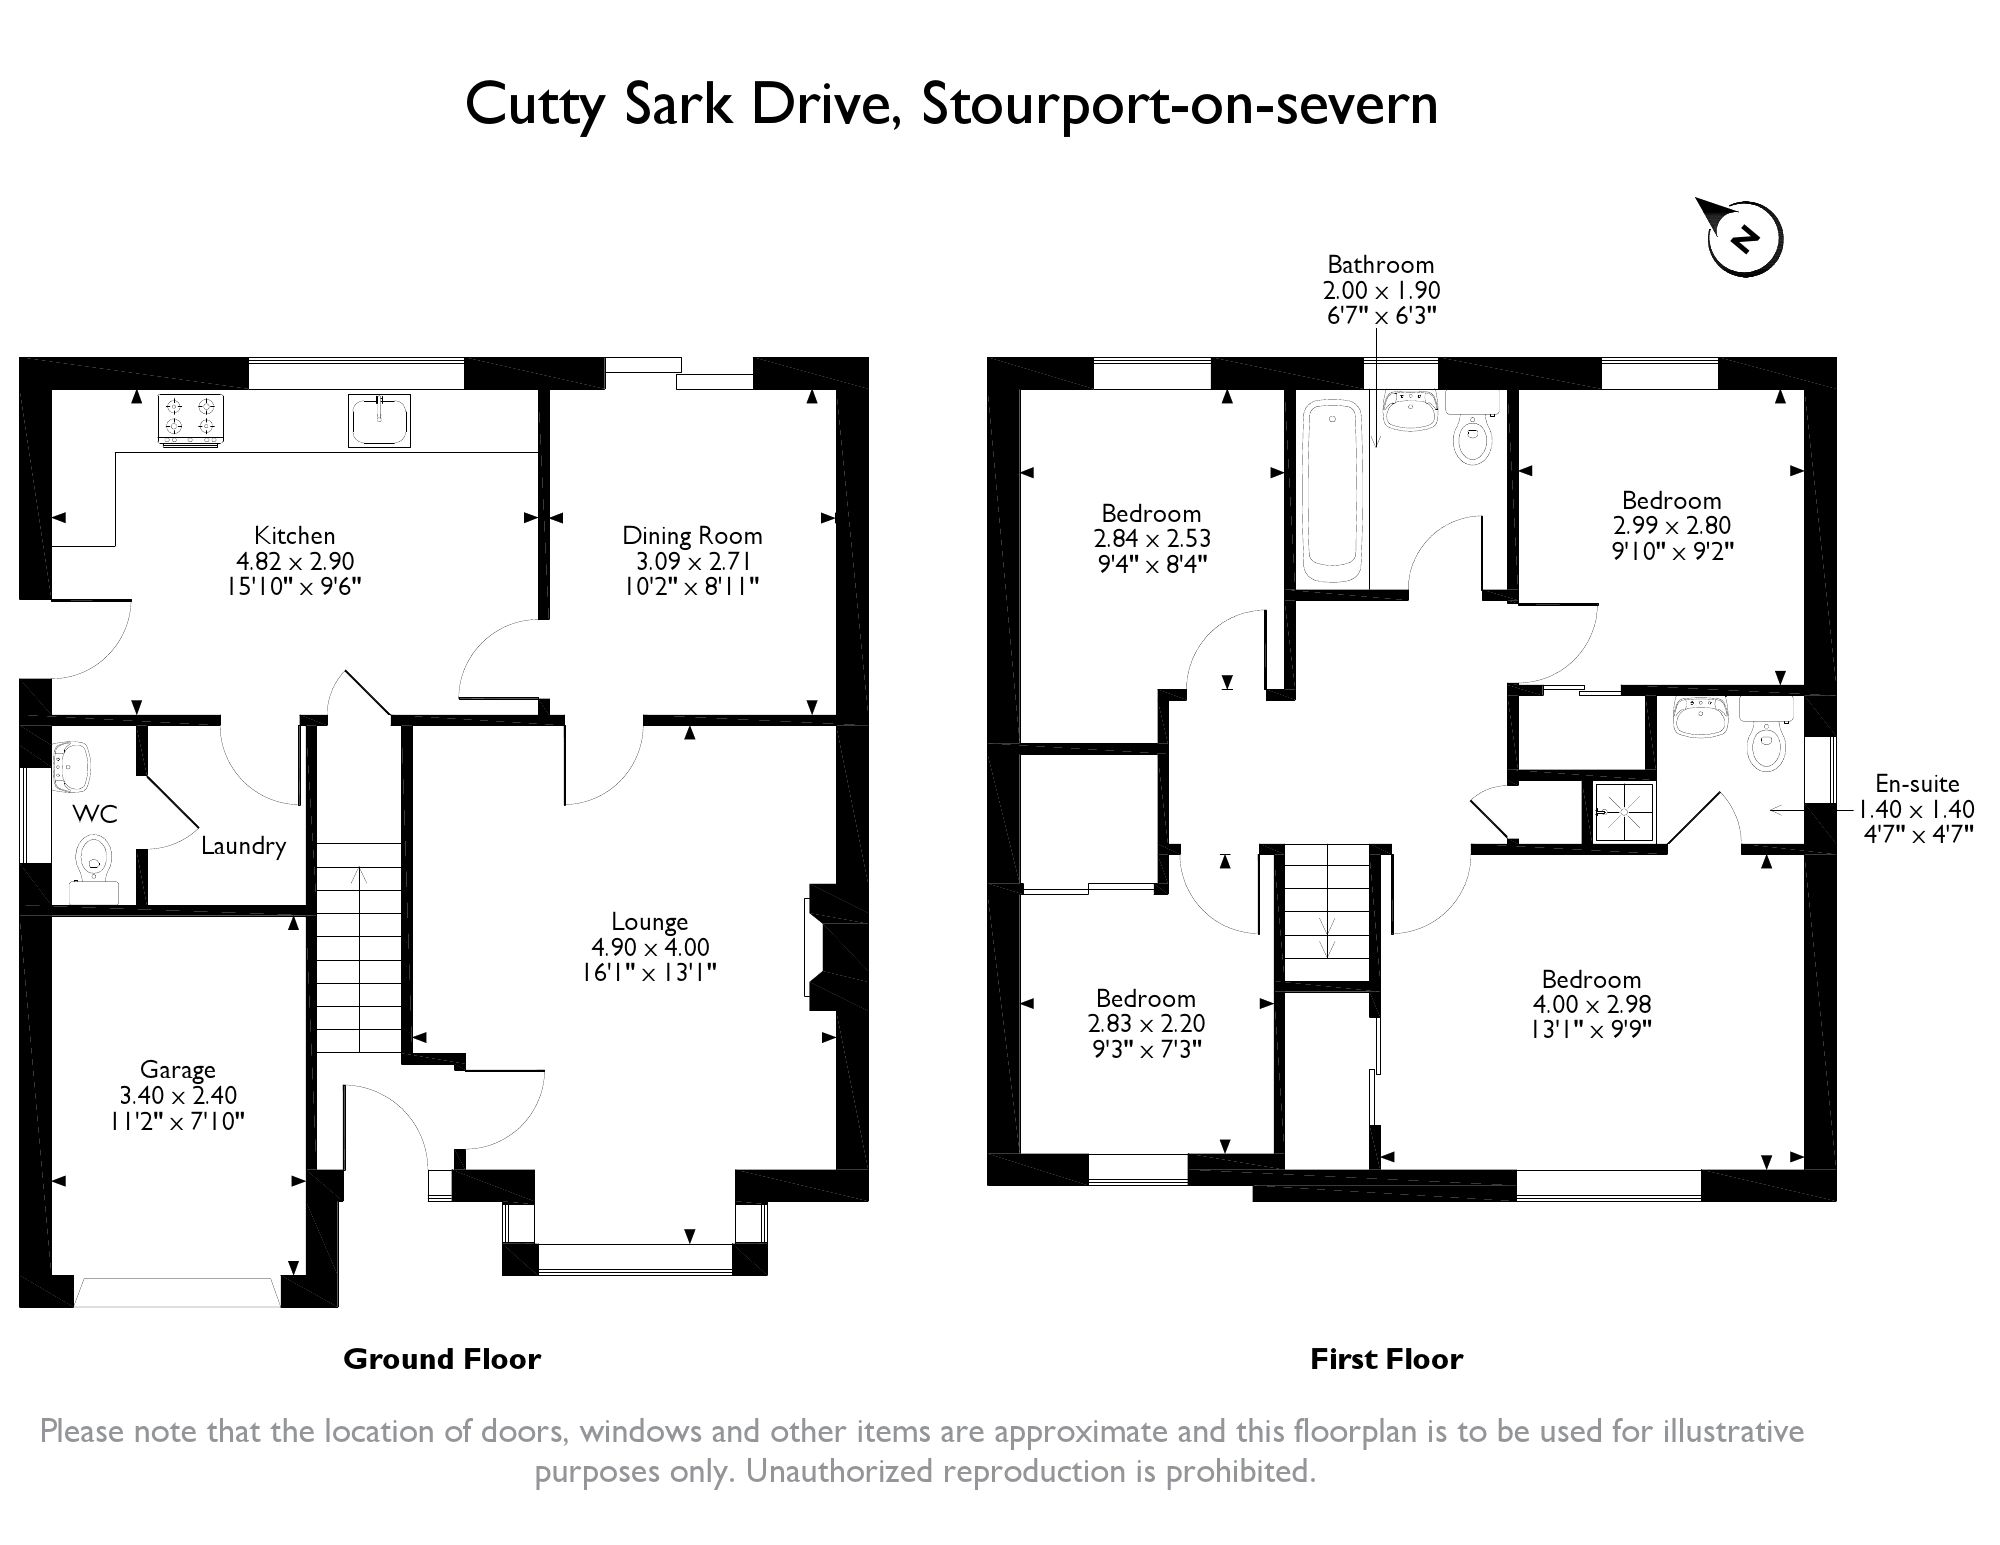 Cutty Sark Drive, Stourport-on-severn, DY13